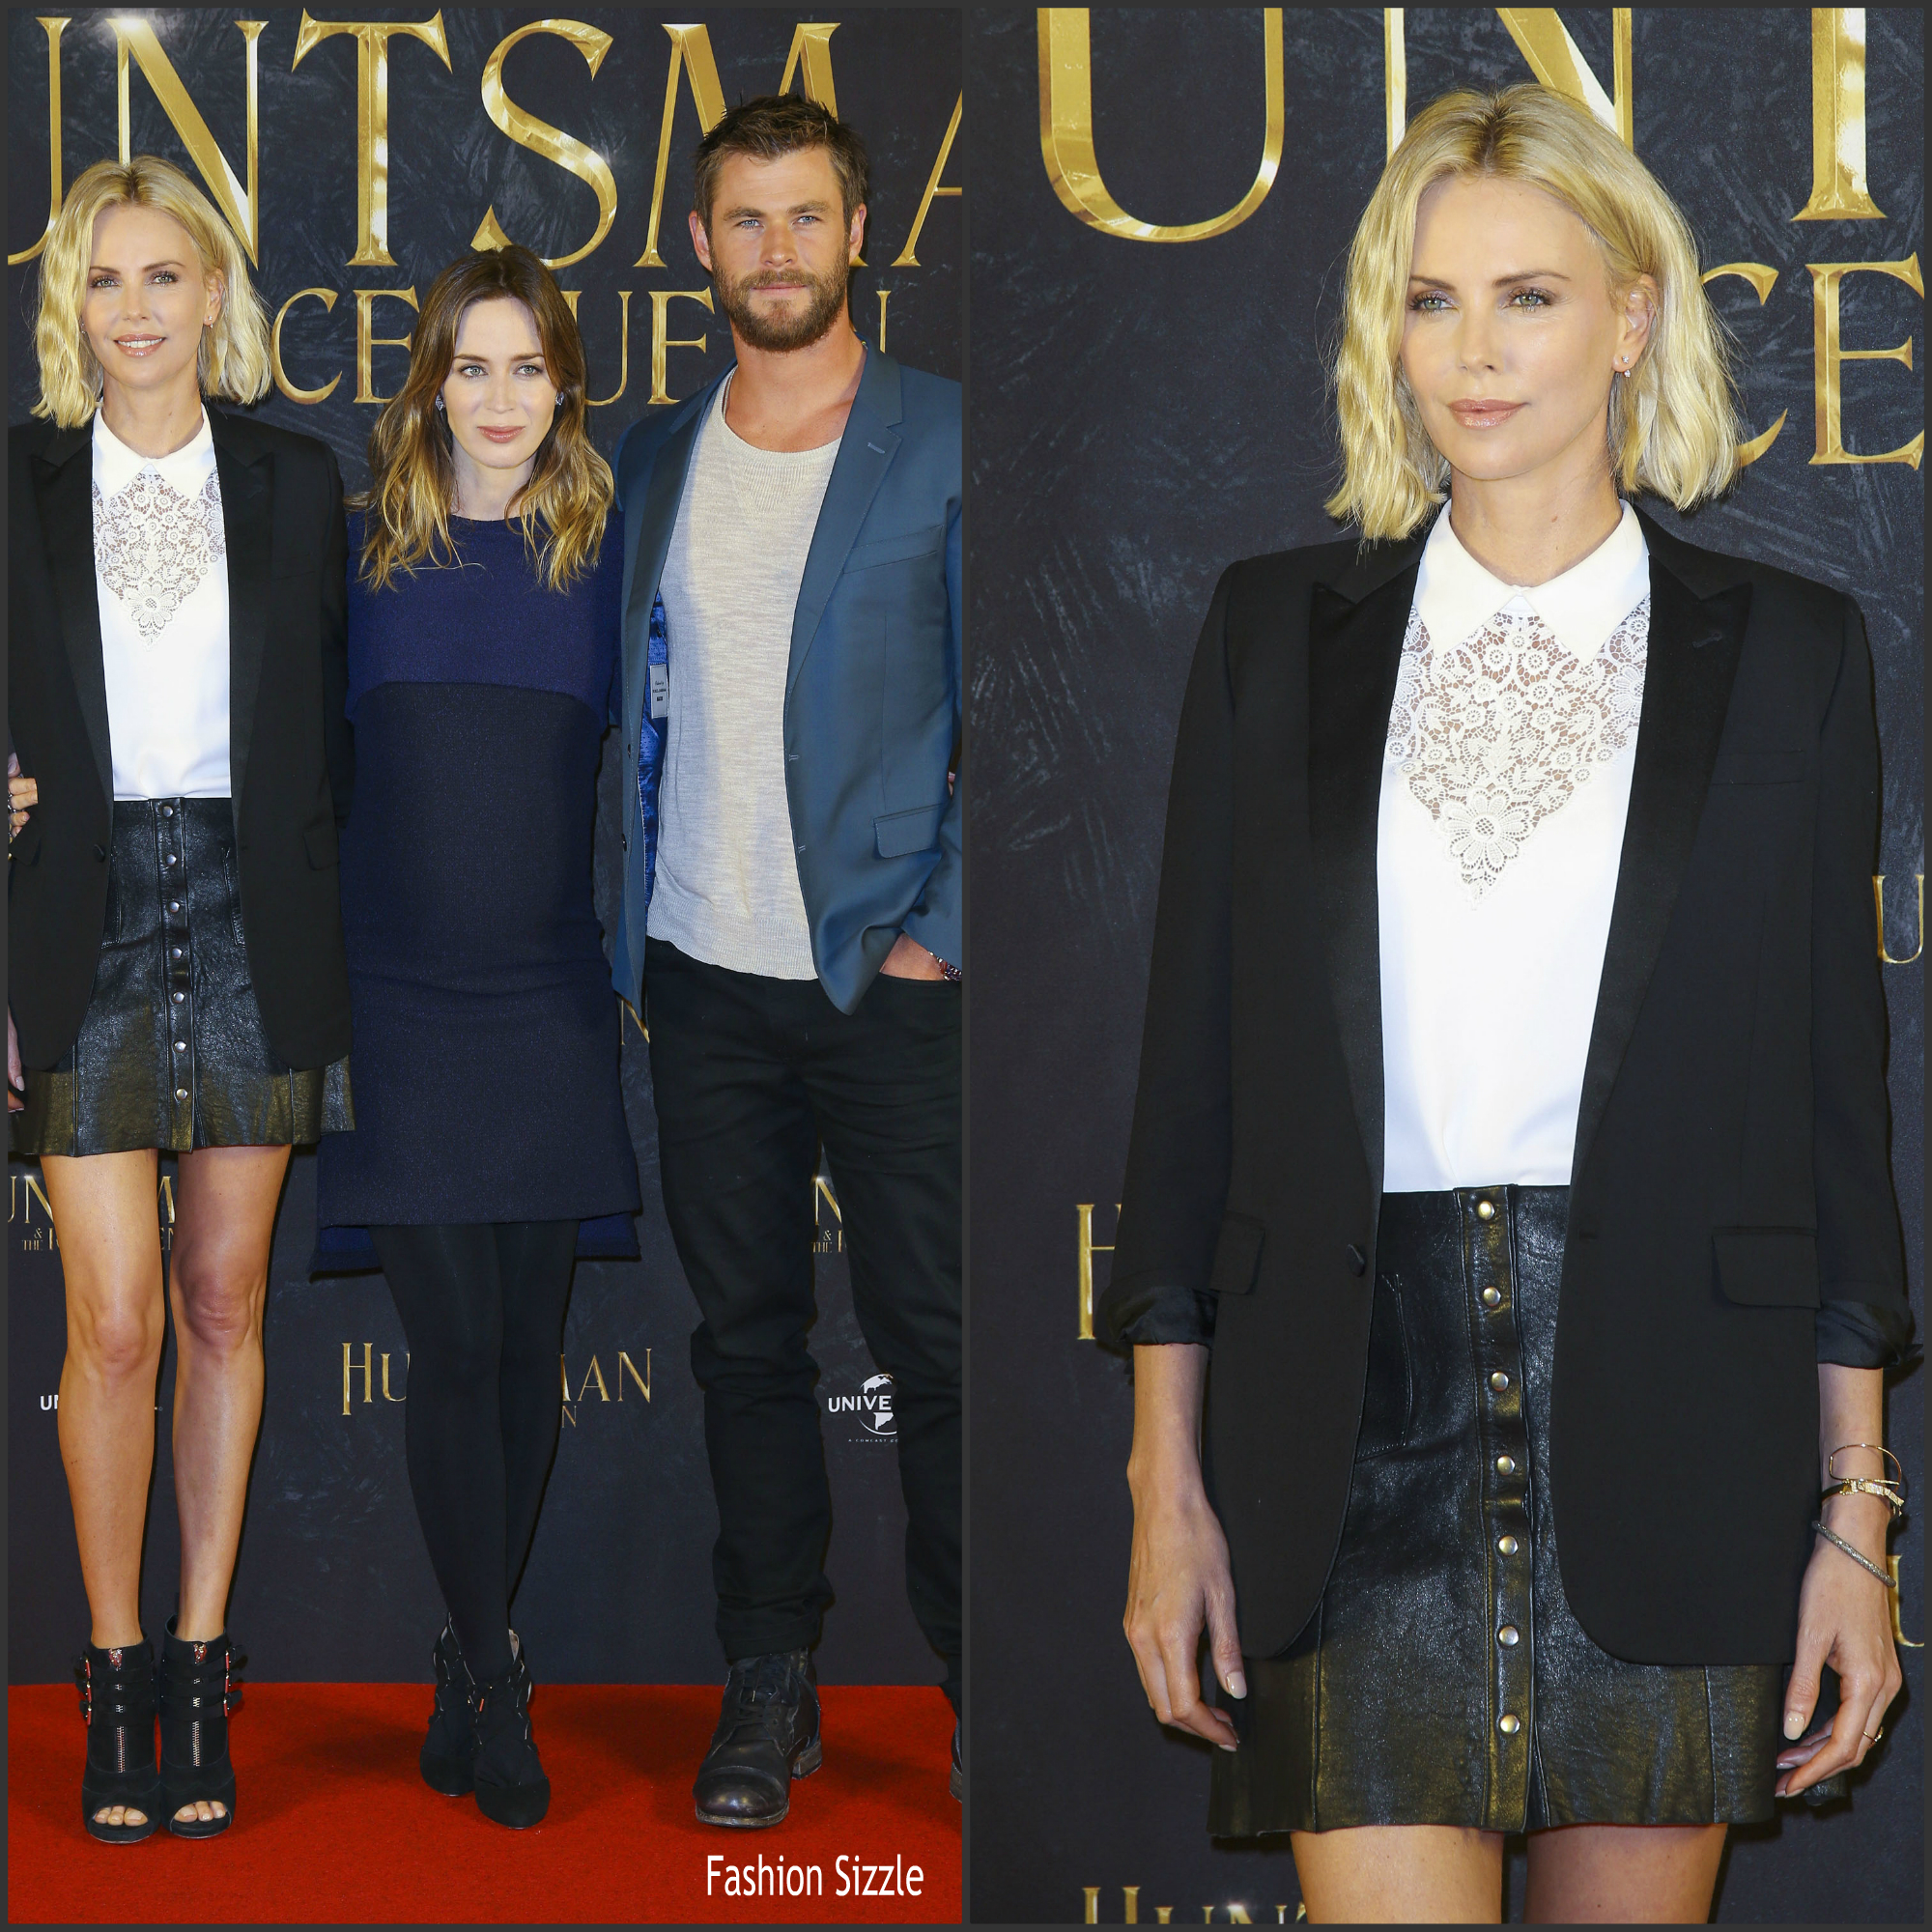 charlize-theron-emily-blunt-chris-hemsworth-huntsman-the-ice-queen-hamburg-photo-call